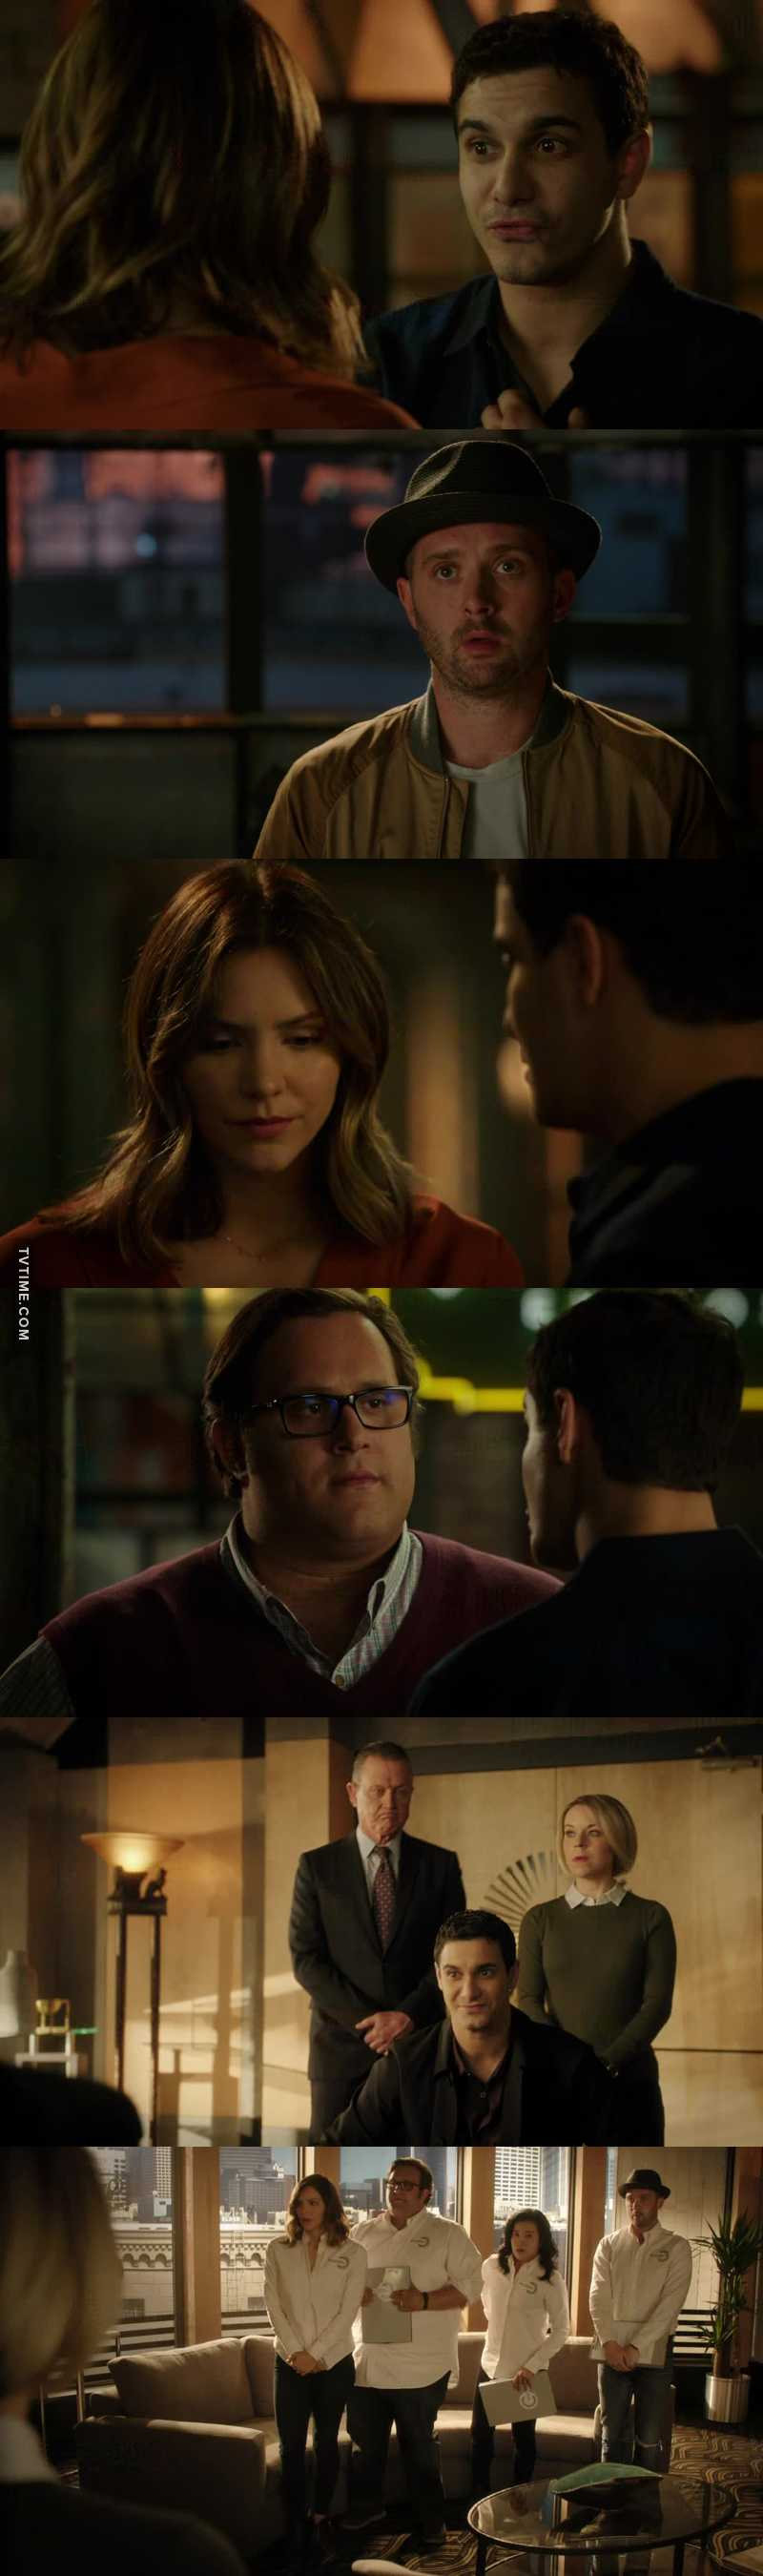 Oh Walter!!! It was likely Paige would find out eventually and that would split group/Scorpion. Didn't realise it was finale today so didn't expect it to happen this episode. What's that mean for next season??